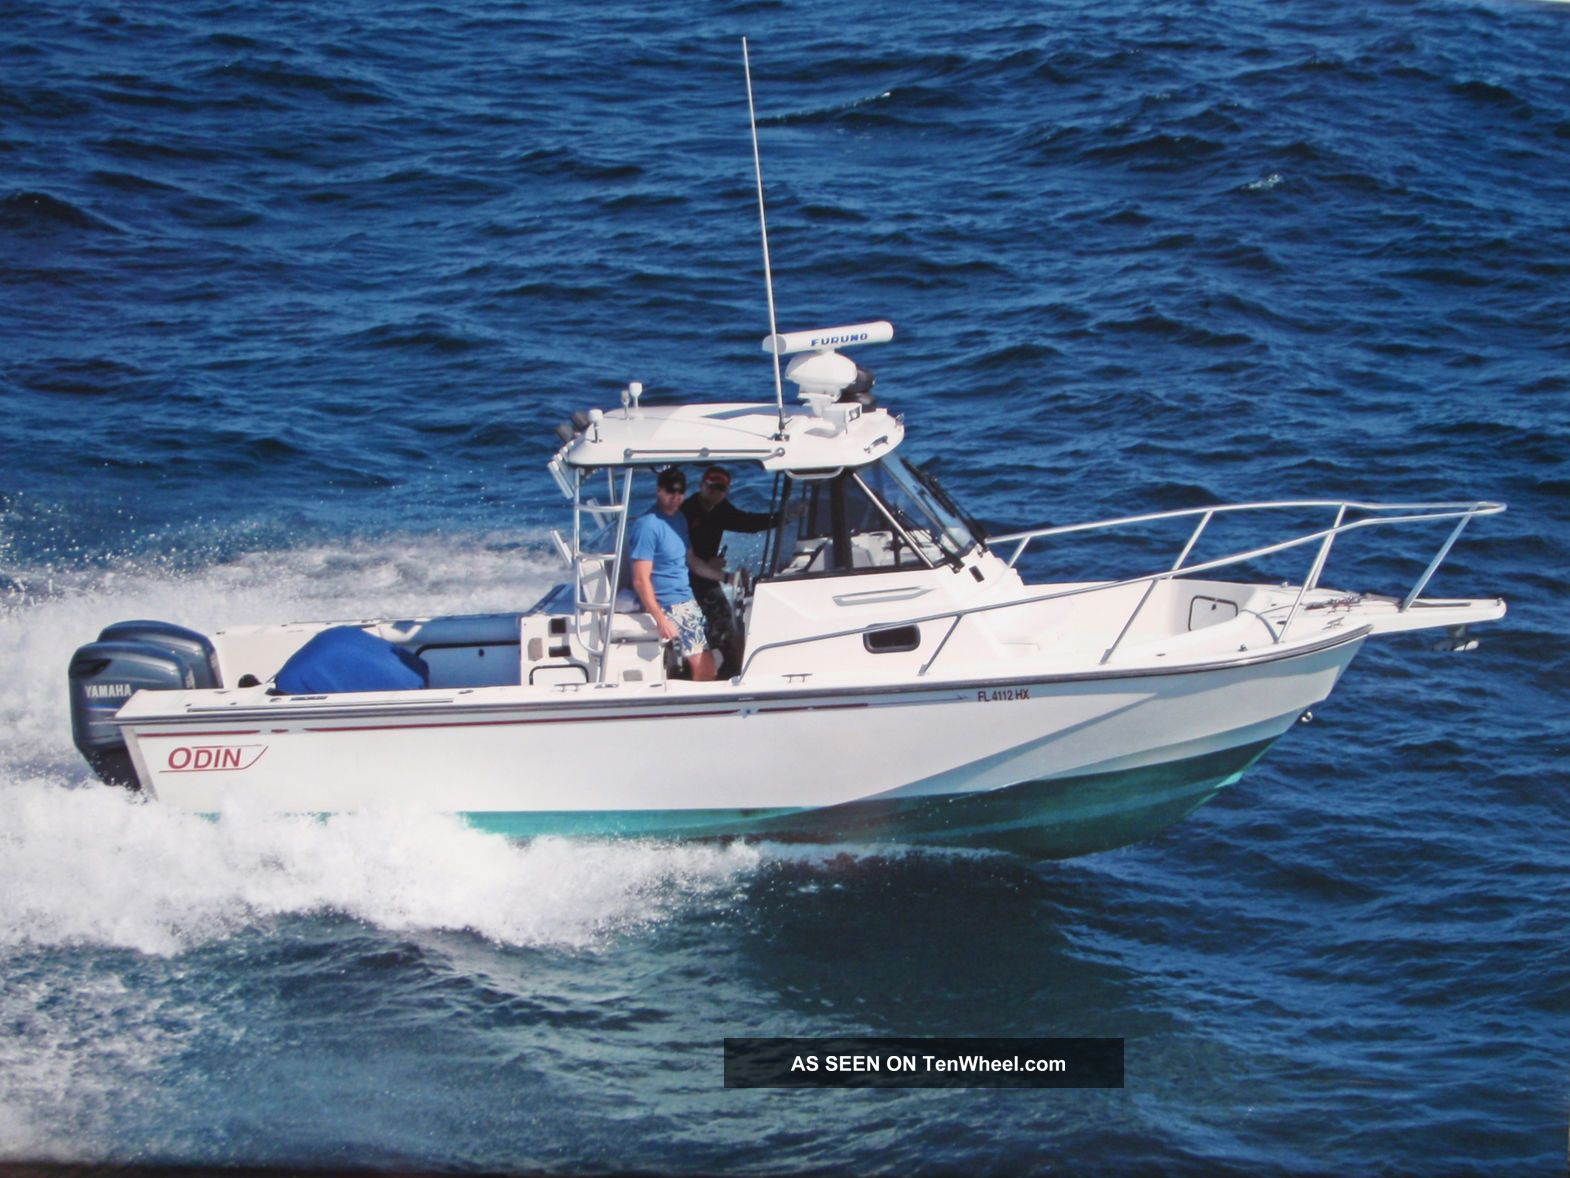 1996 Boston Whaler Offahore Offshore Saltwater Fishing photo